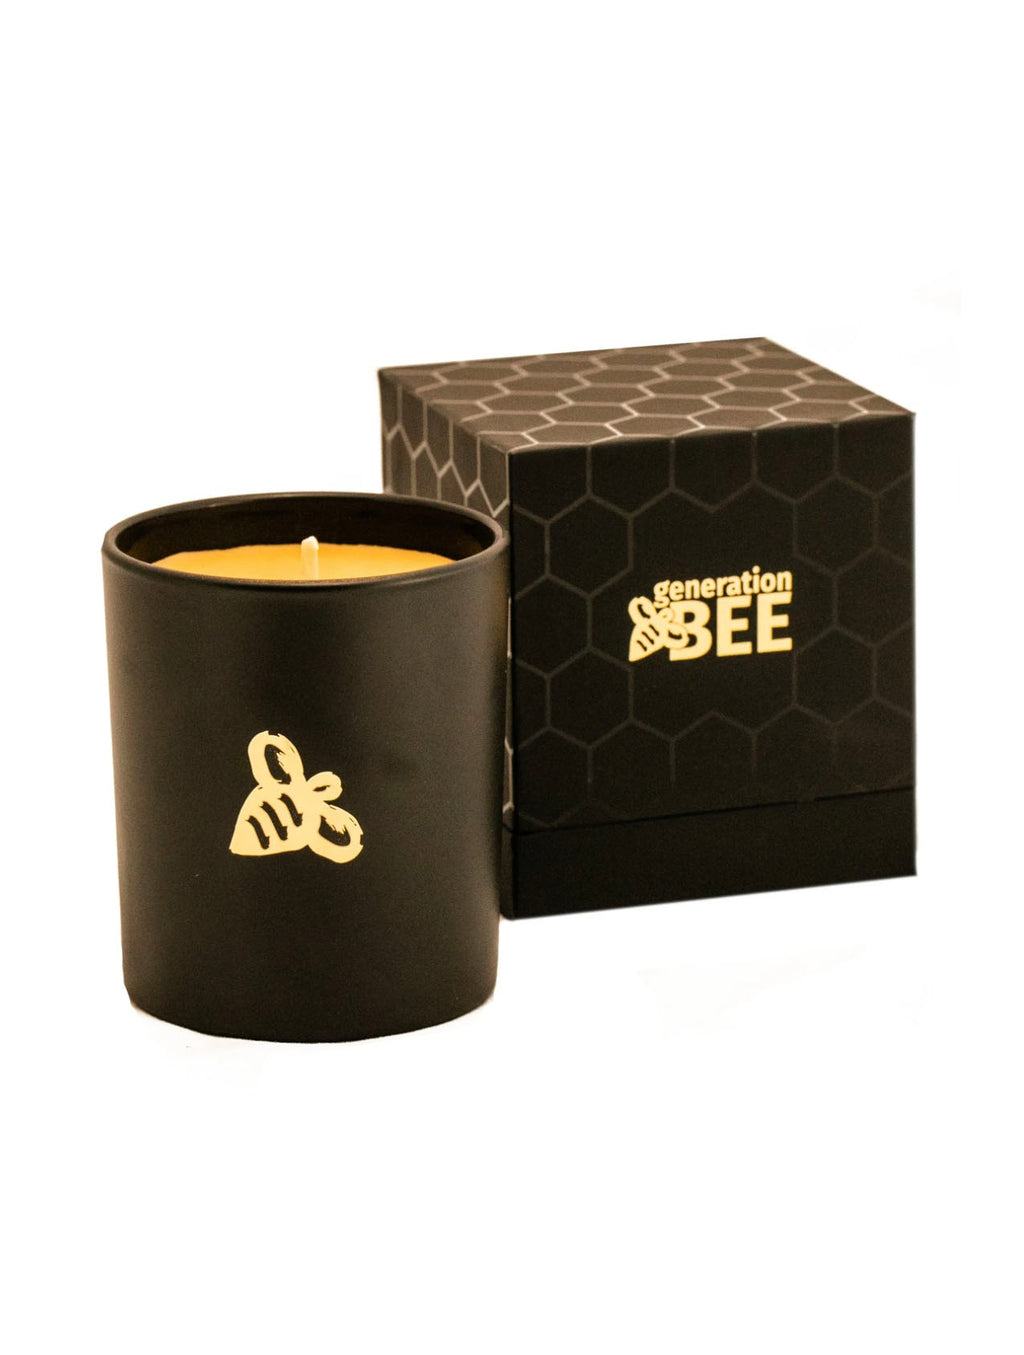 Generation Bee 8oz Candle in Pumpkin Patch